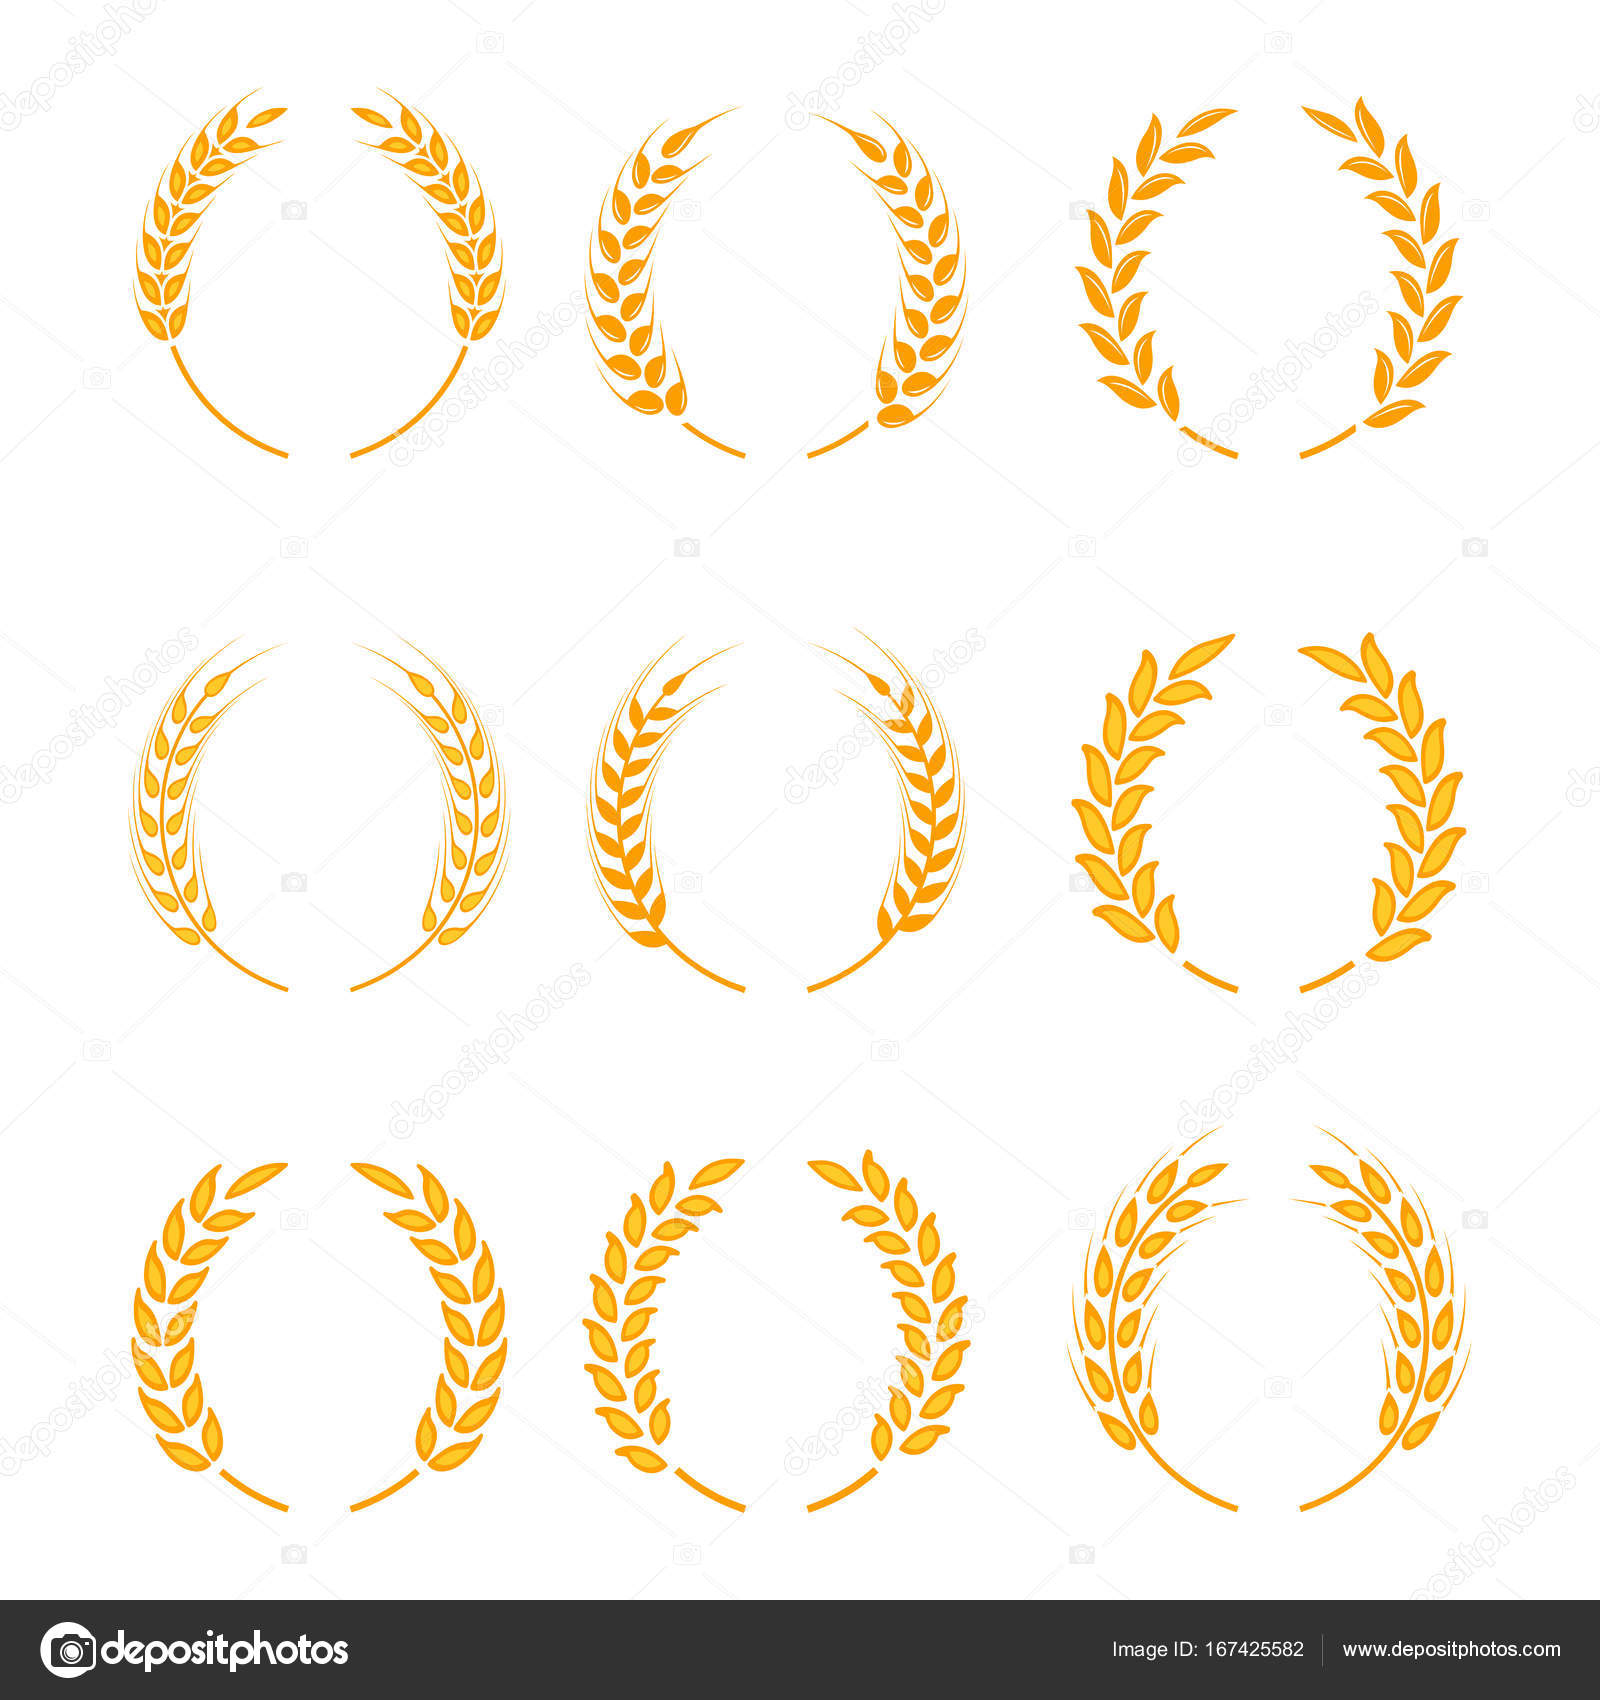 Gold laurel wreath a symbol of the winner wheat ears or rice gold laurel wreath a symbol of the winner wheat ears or rice icons set buycottarizona Image collections